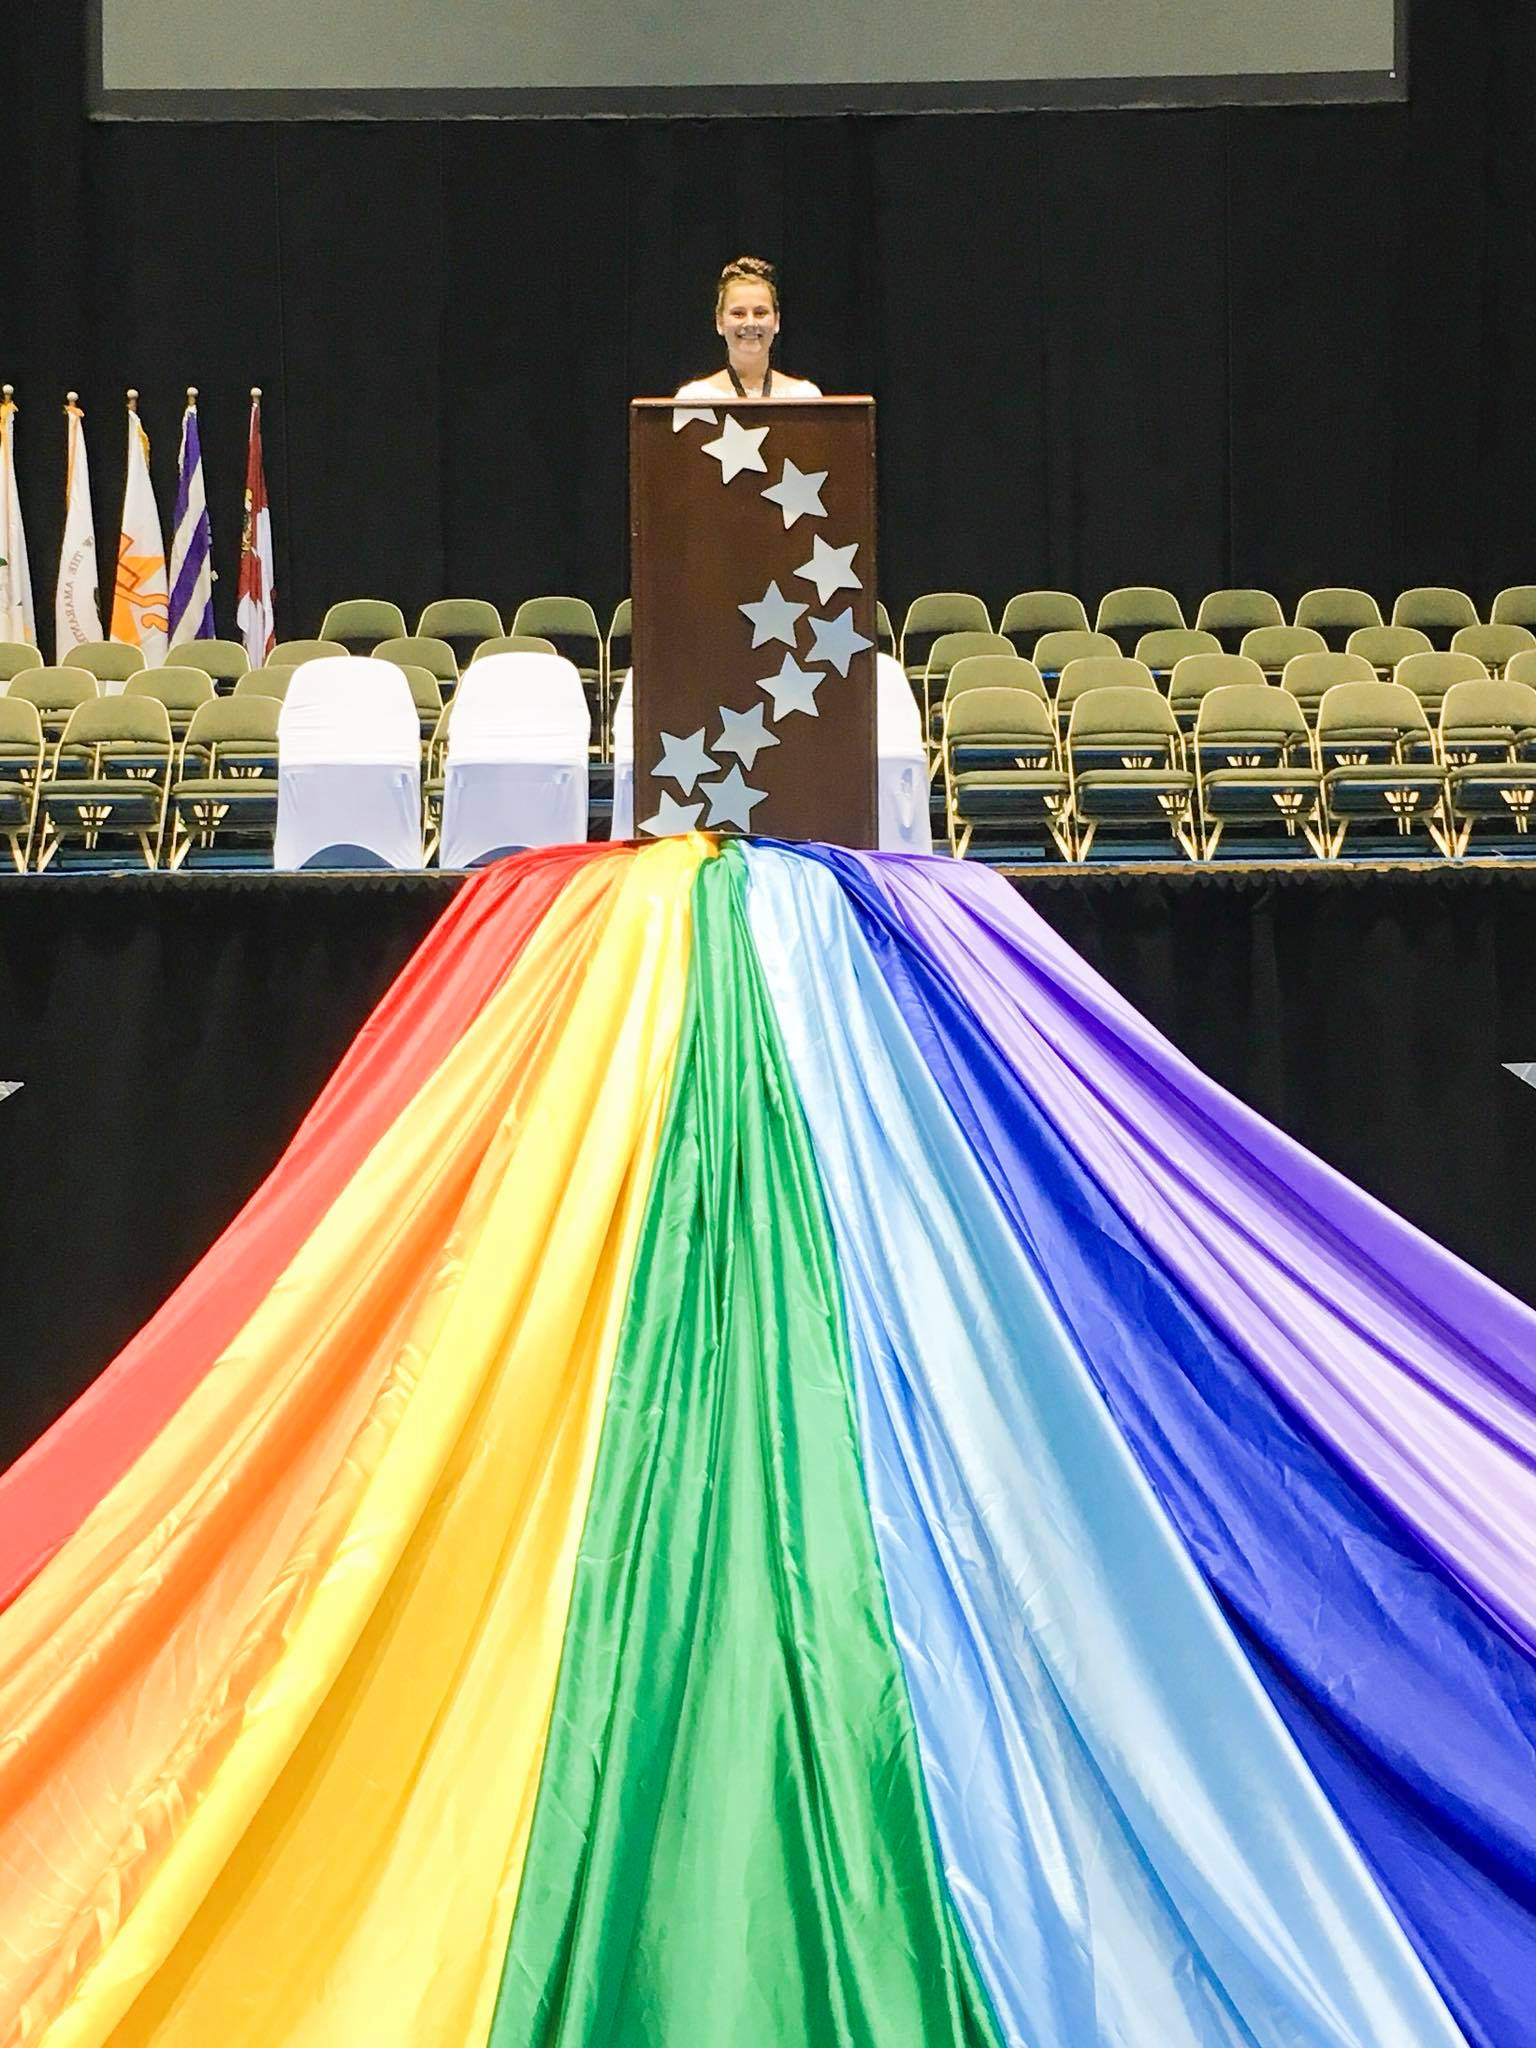 Junior PGWA Kate was exceptional as the Mistress of Ceremonies for the Grand Cross of Color Ceremony